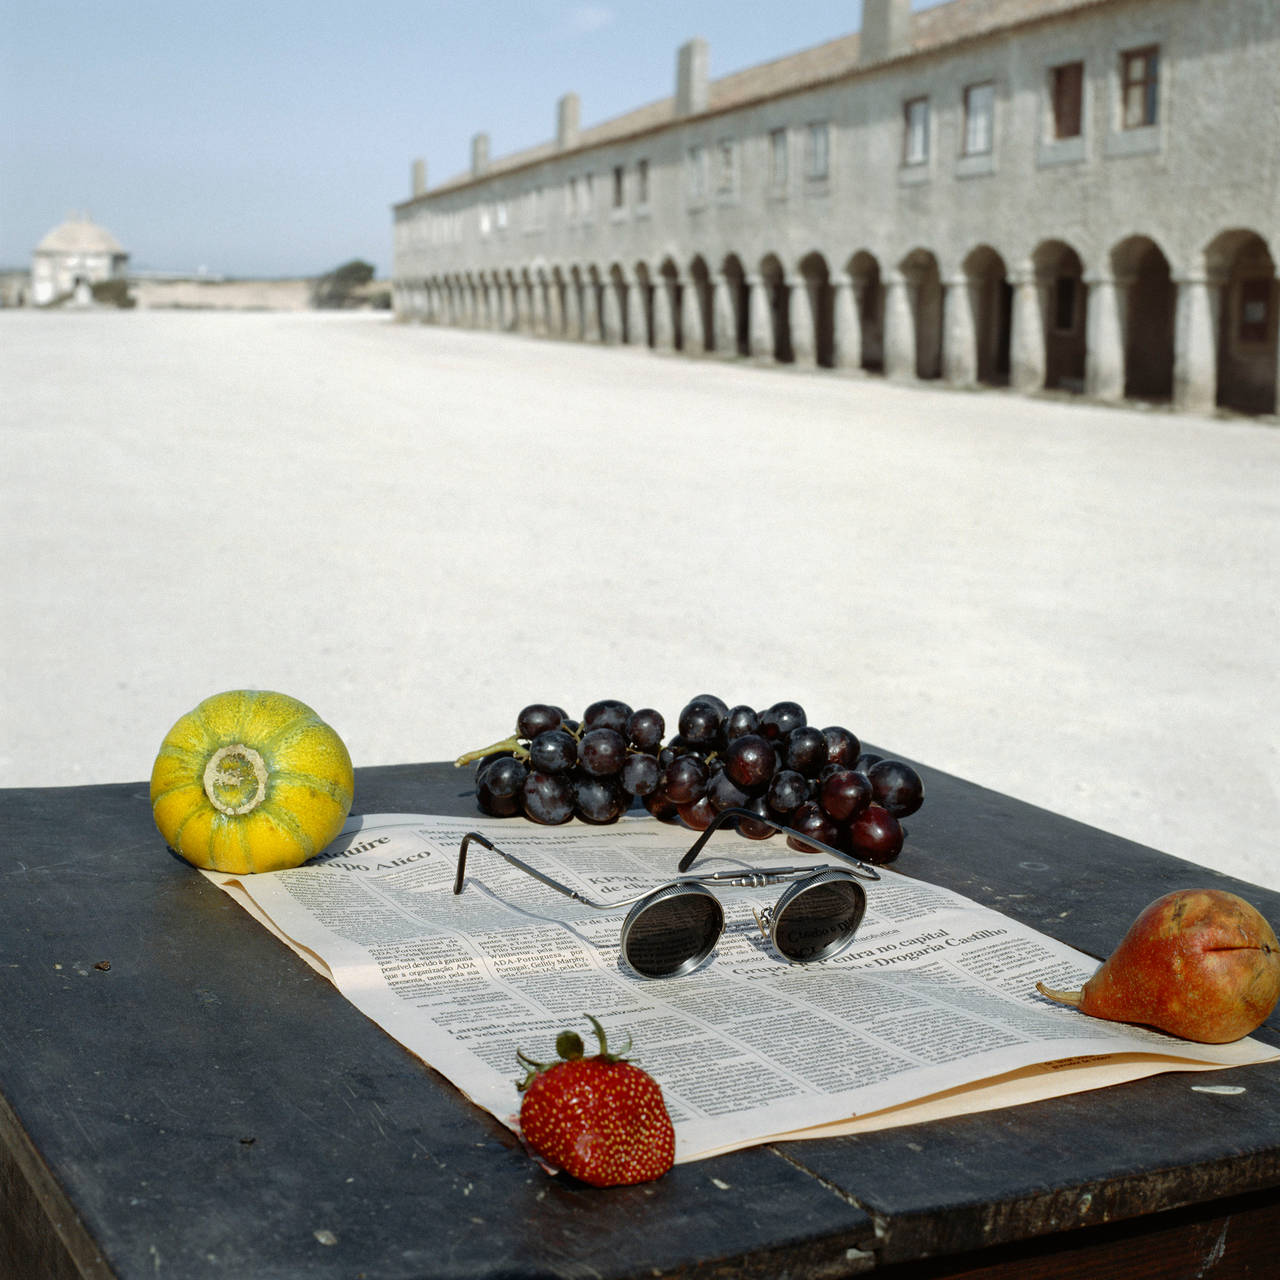 Geof Kern Color Photograph - Still Life with Fruits and Newspaper